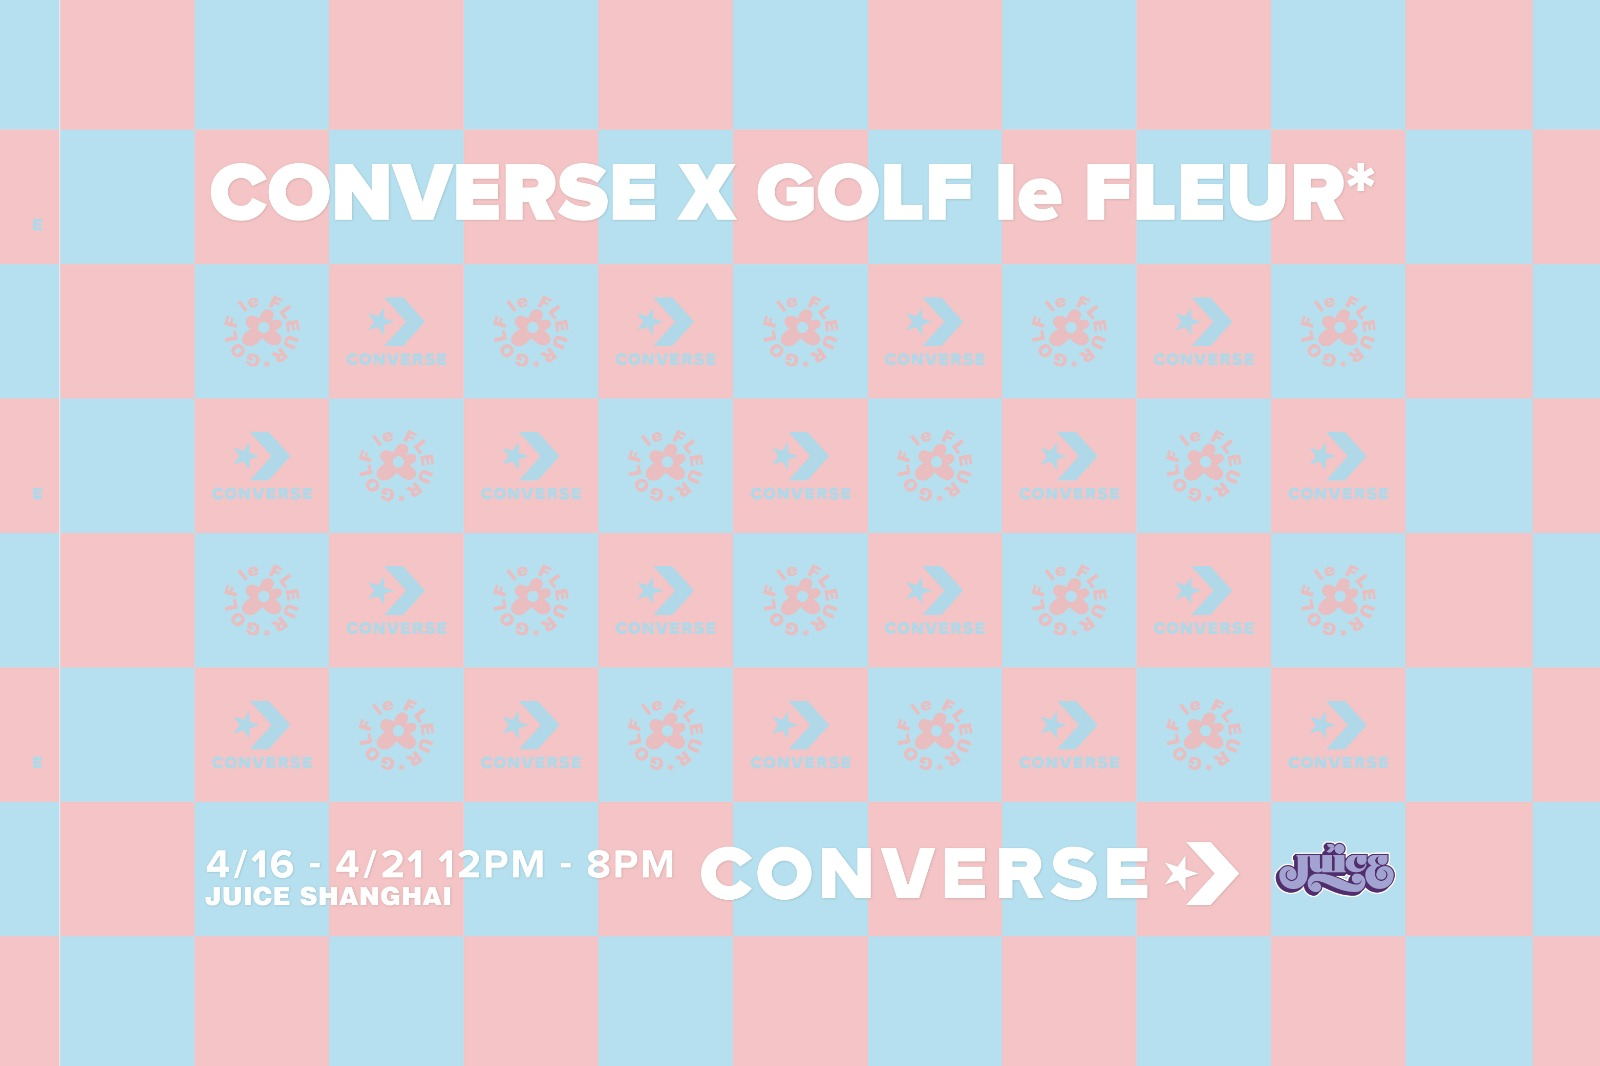 Tyler The Creator And Converse Unveils The Latest Golf Le Fleur X Converse Gianno In Two Colorways Juicestore